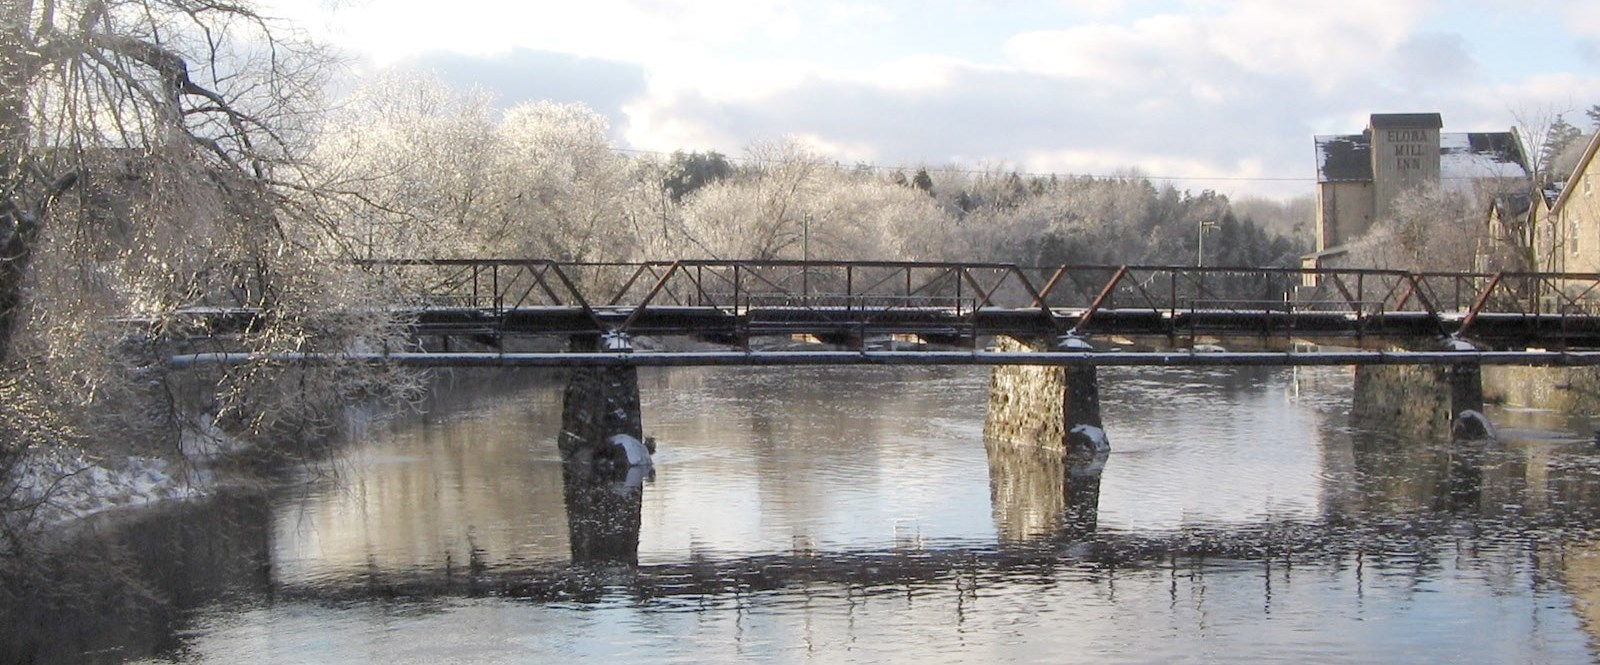 iron bridge over river in winter